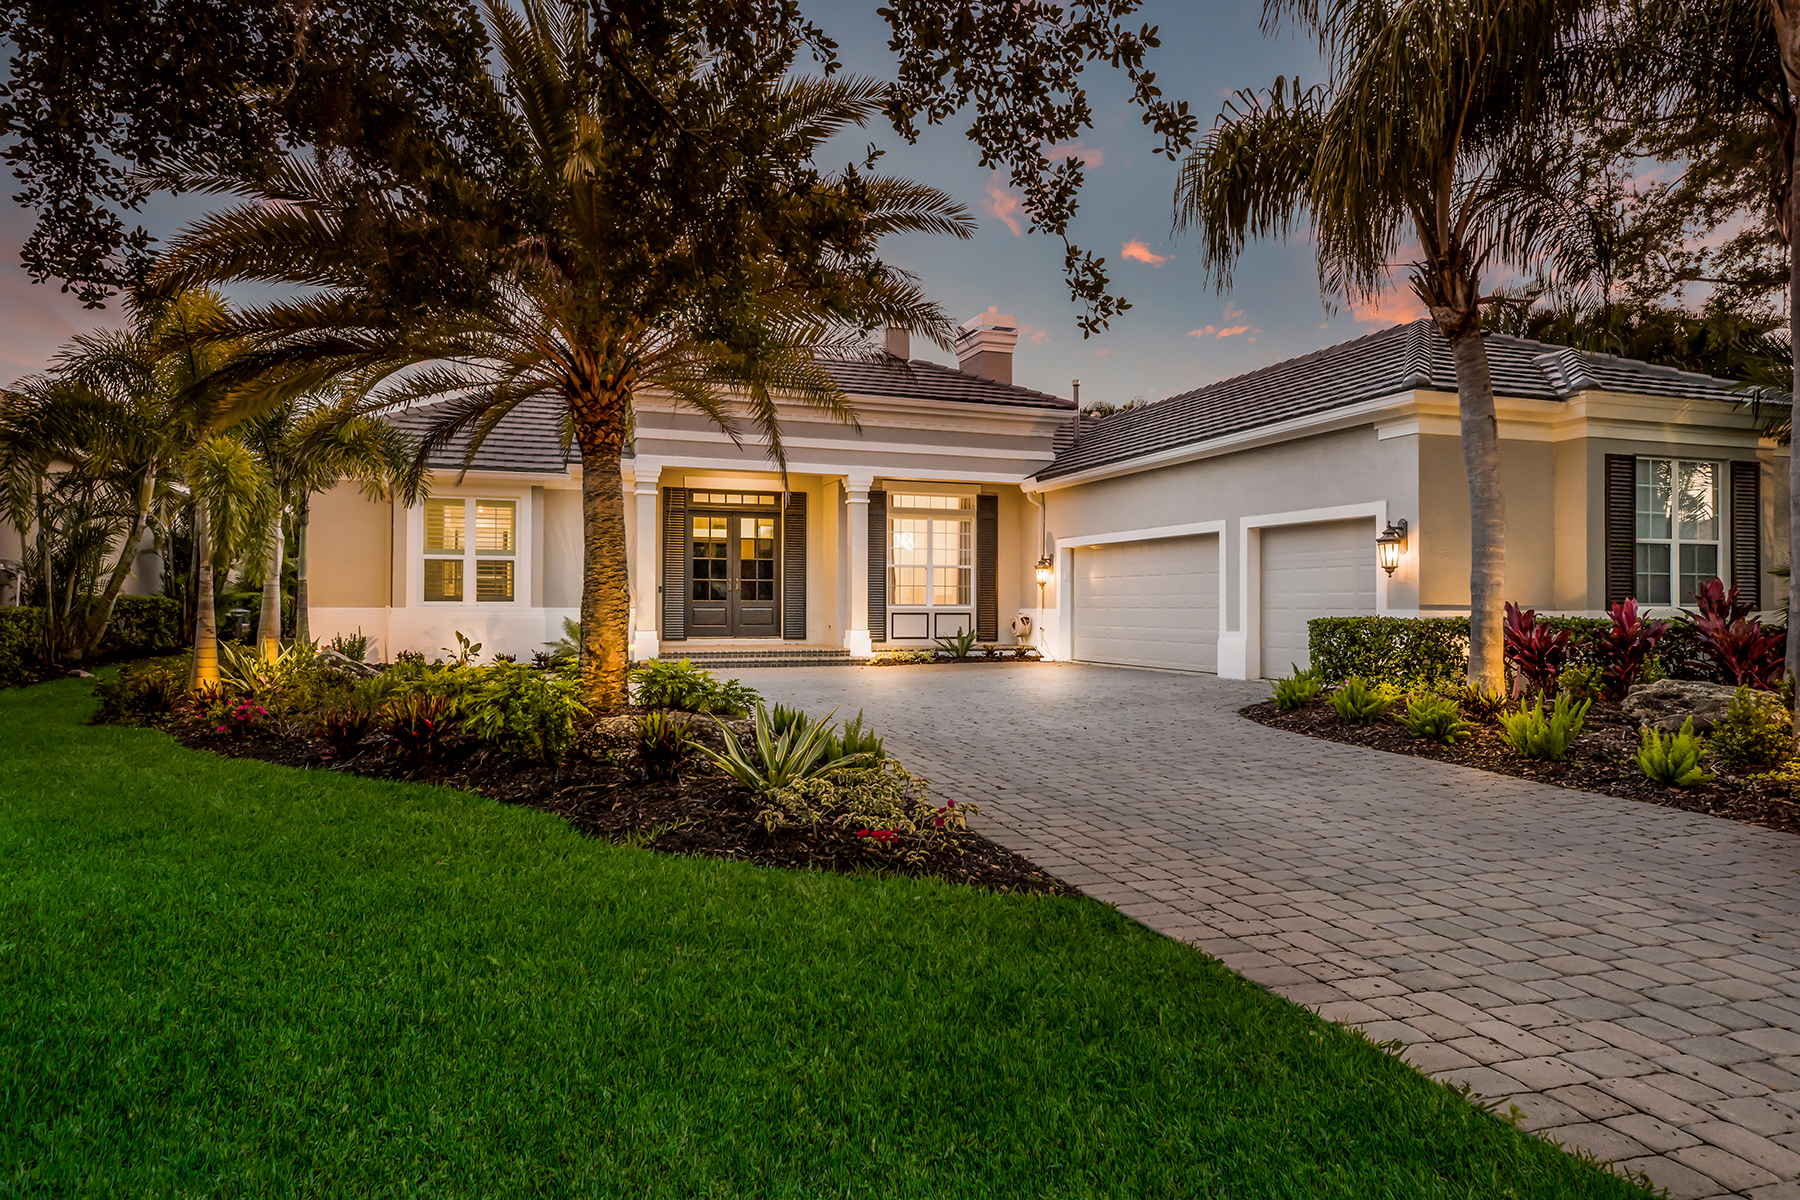 single family homes for Active at LAKEWOOD RANCH COUNTRY CLUB 7339 Greystone St Lakewood Ranch, Florida 34202 United States